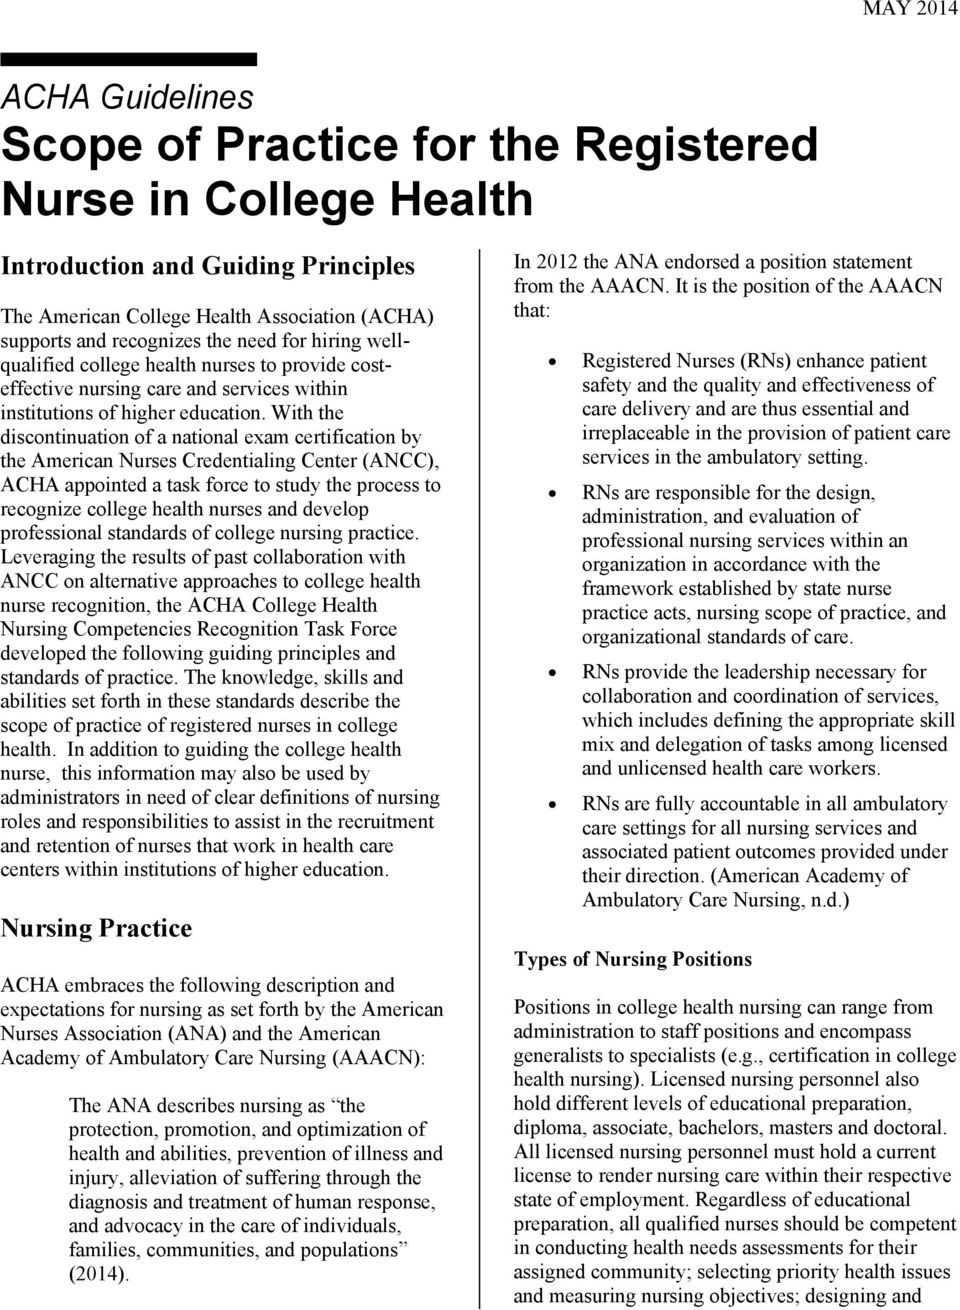 With the discontinuation of a national exam certification by the American Nurses Credentialing Center (ANCC), ACHA appointed a task force to study the process to recognize college health nurses and